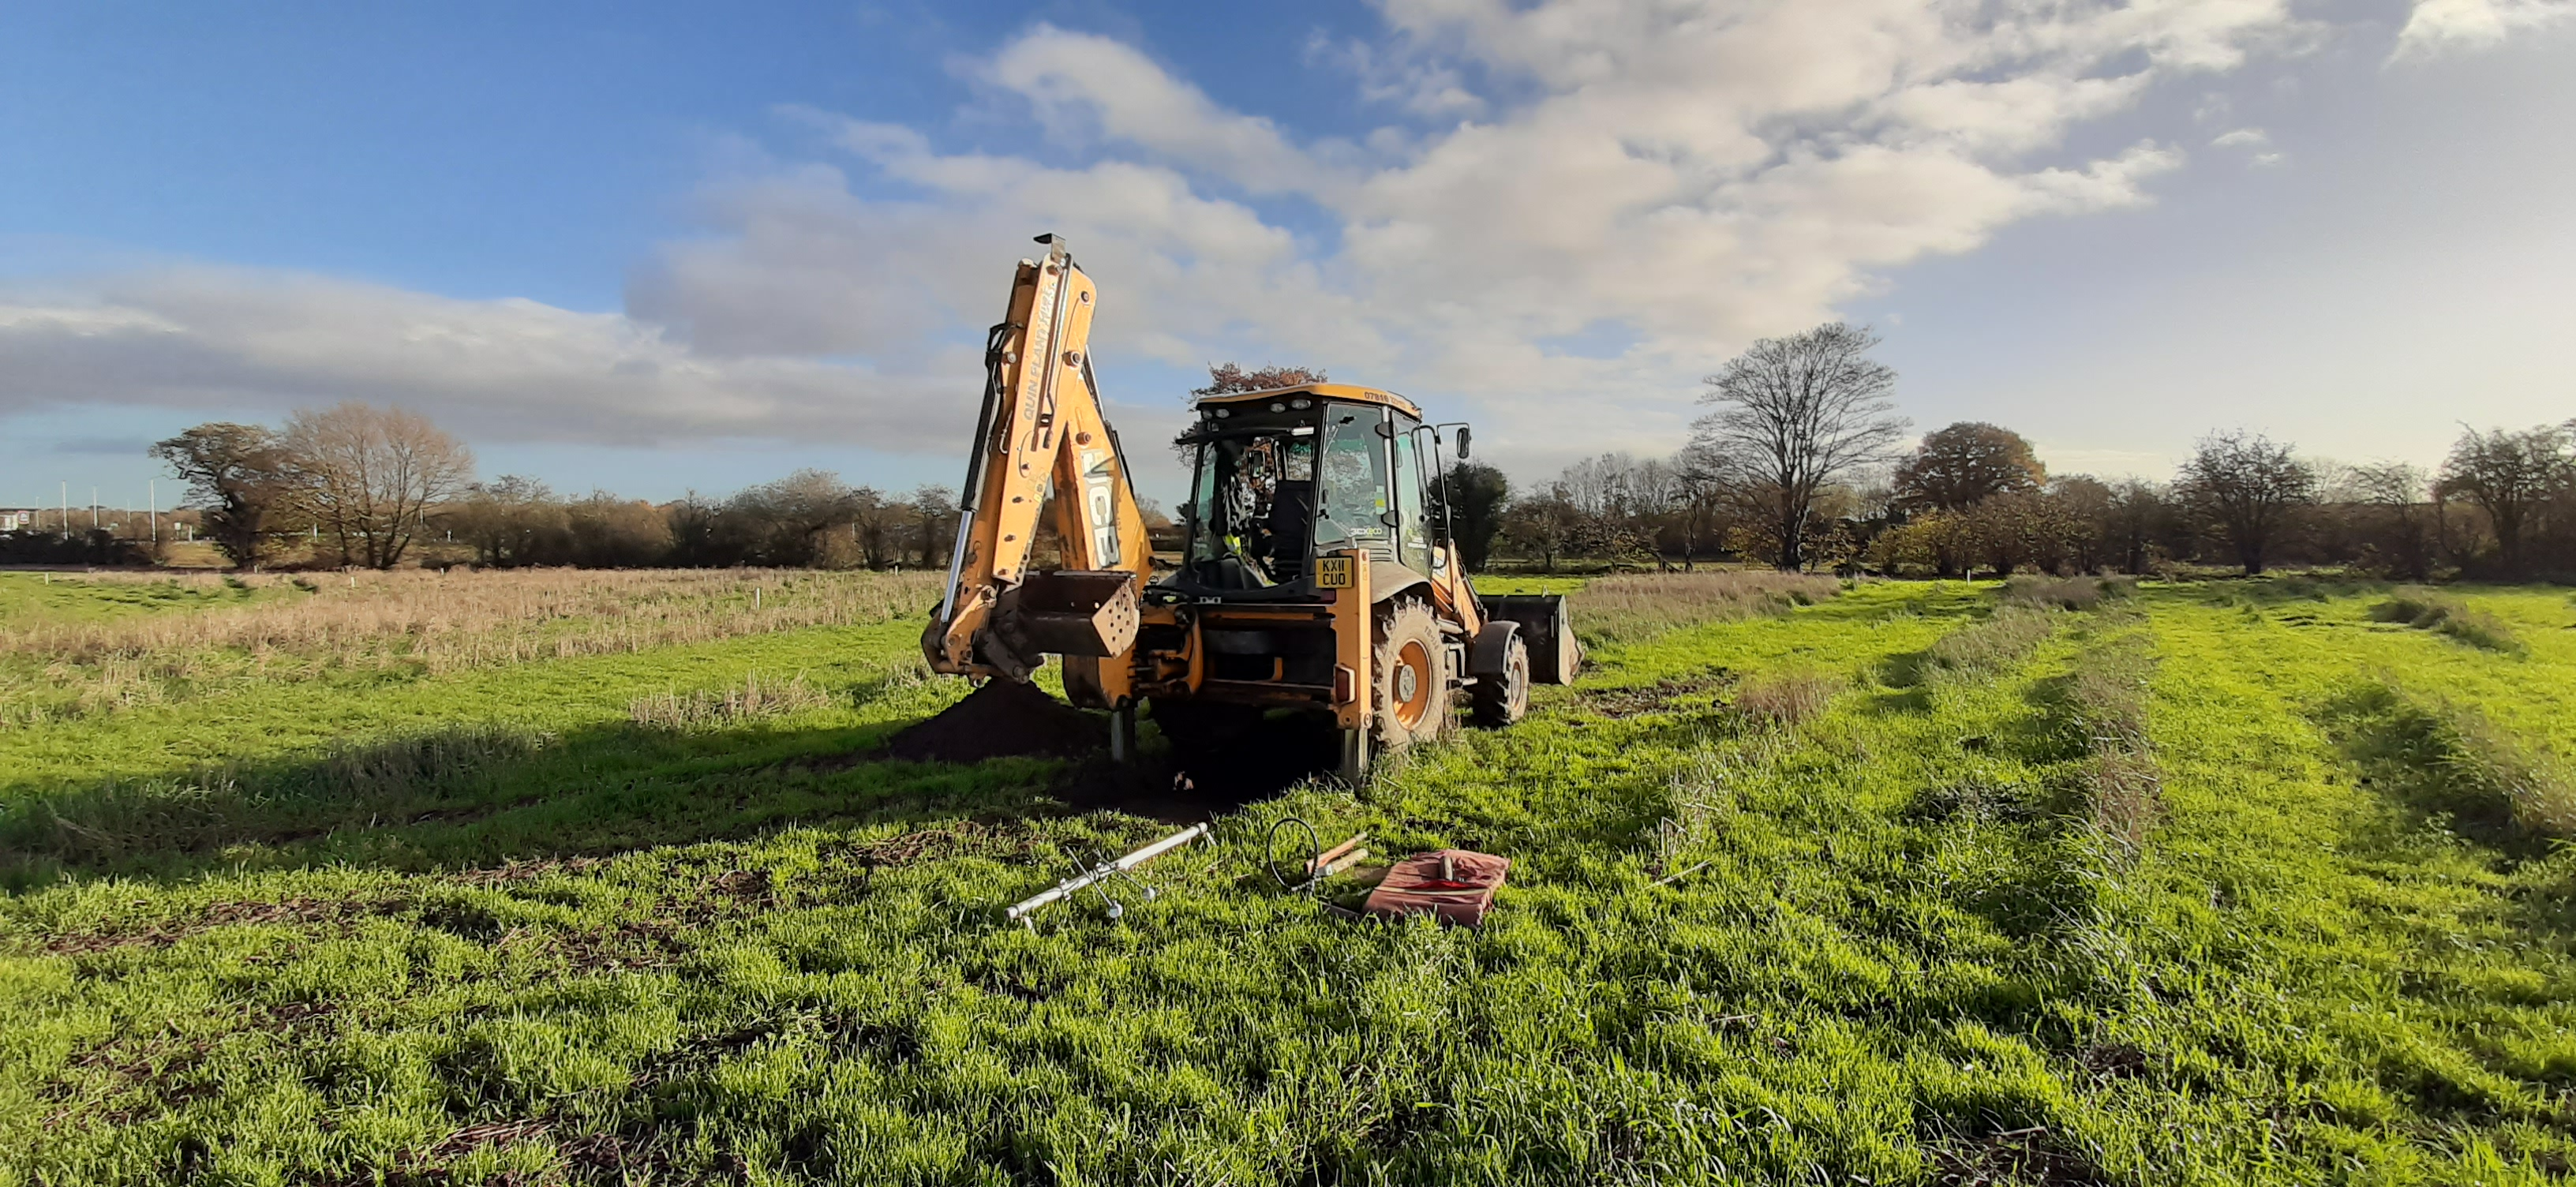 JCB 3CX Site Investigation